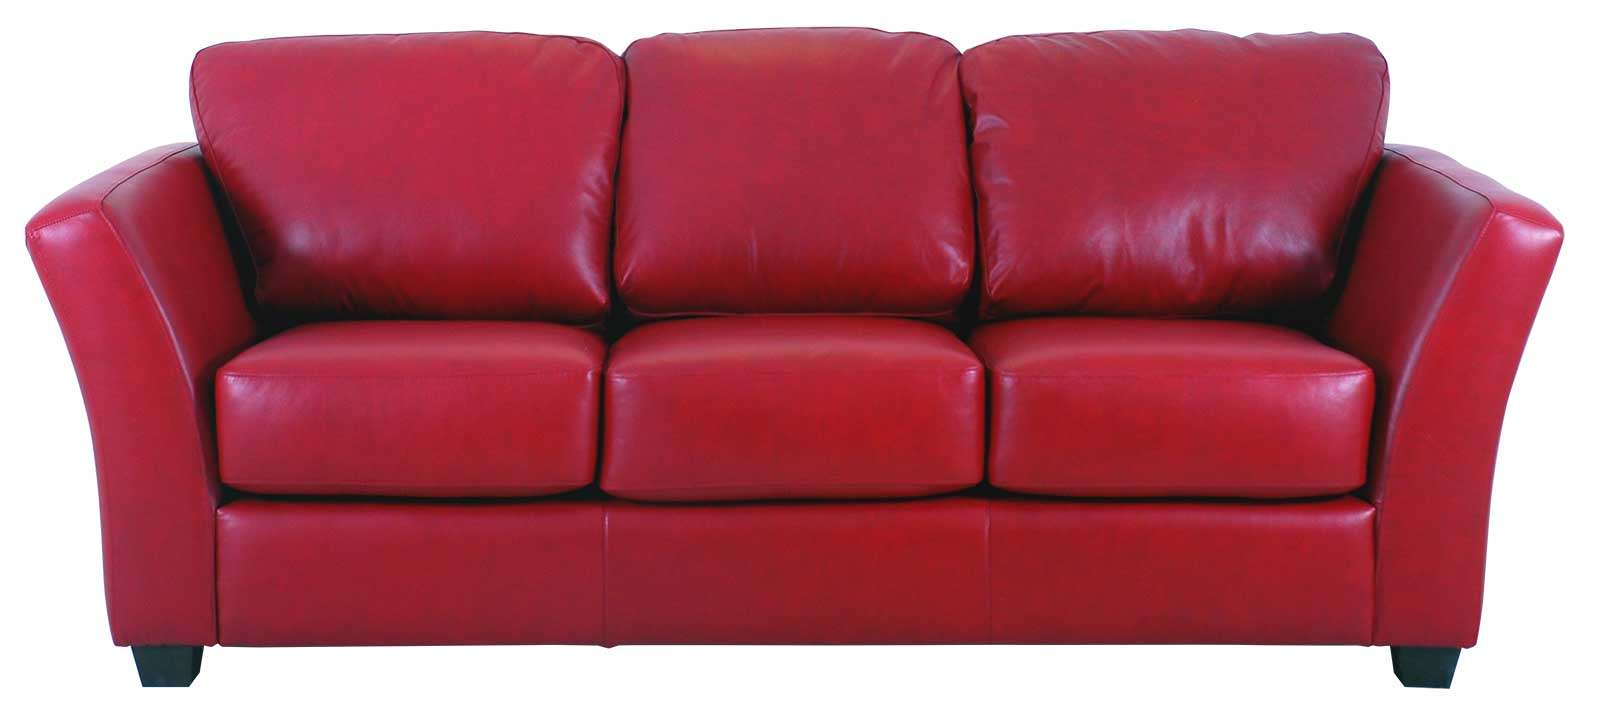 decorating-with-a-red-leather-couch